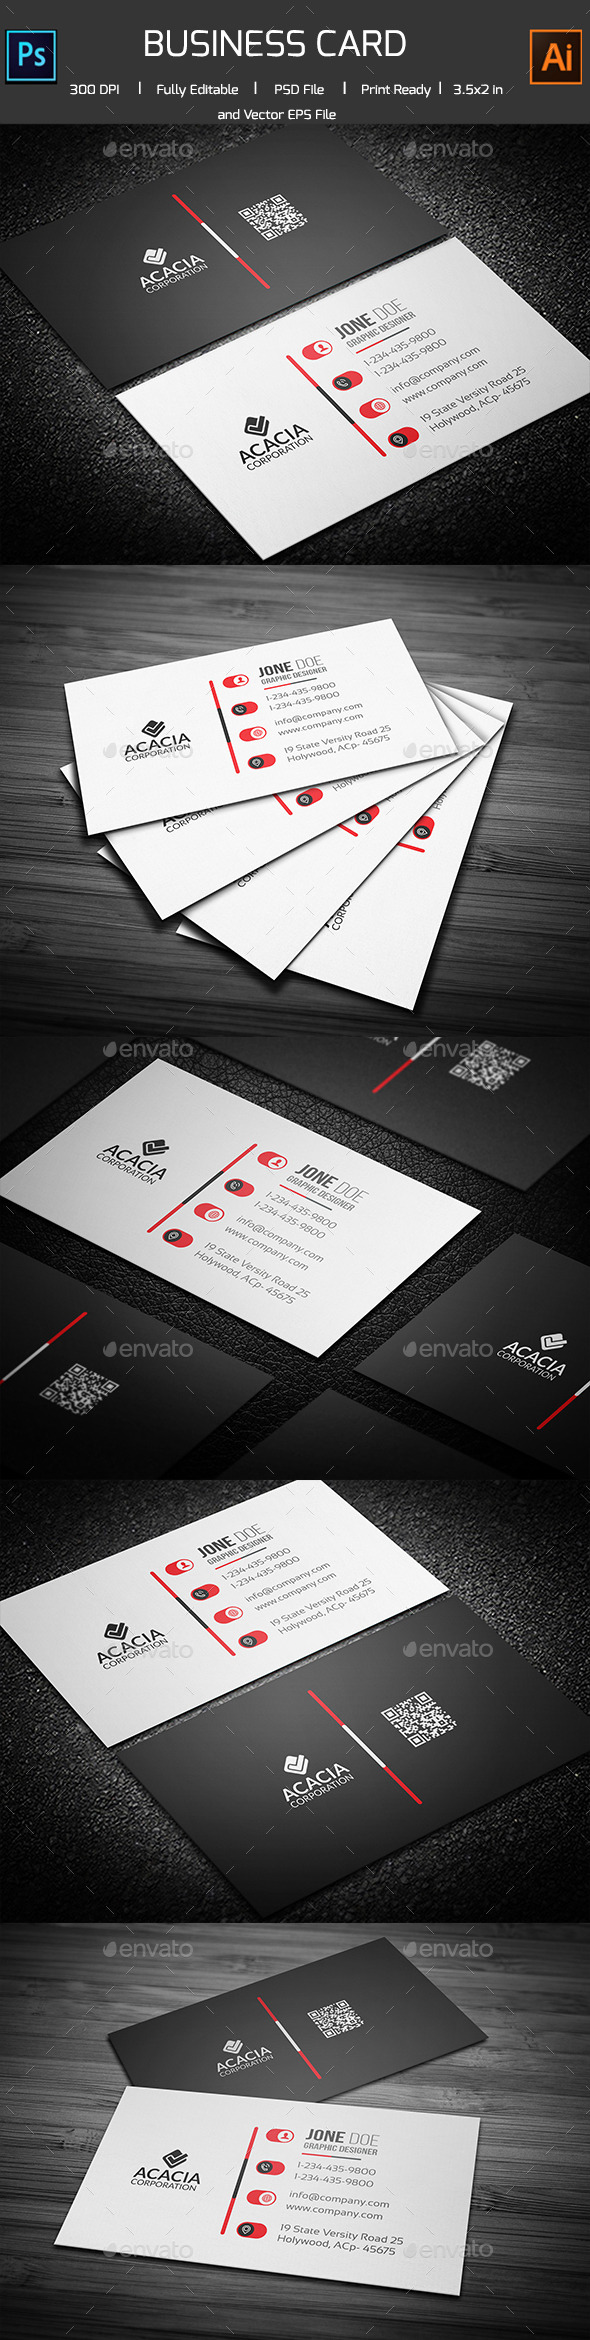 Professional Business Card - Corporate Business Cards